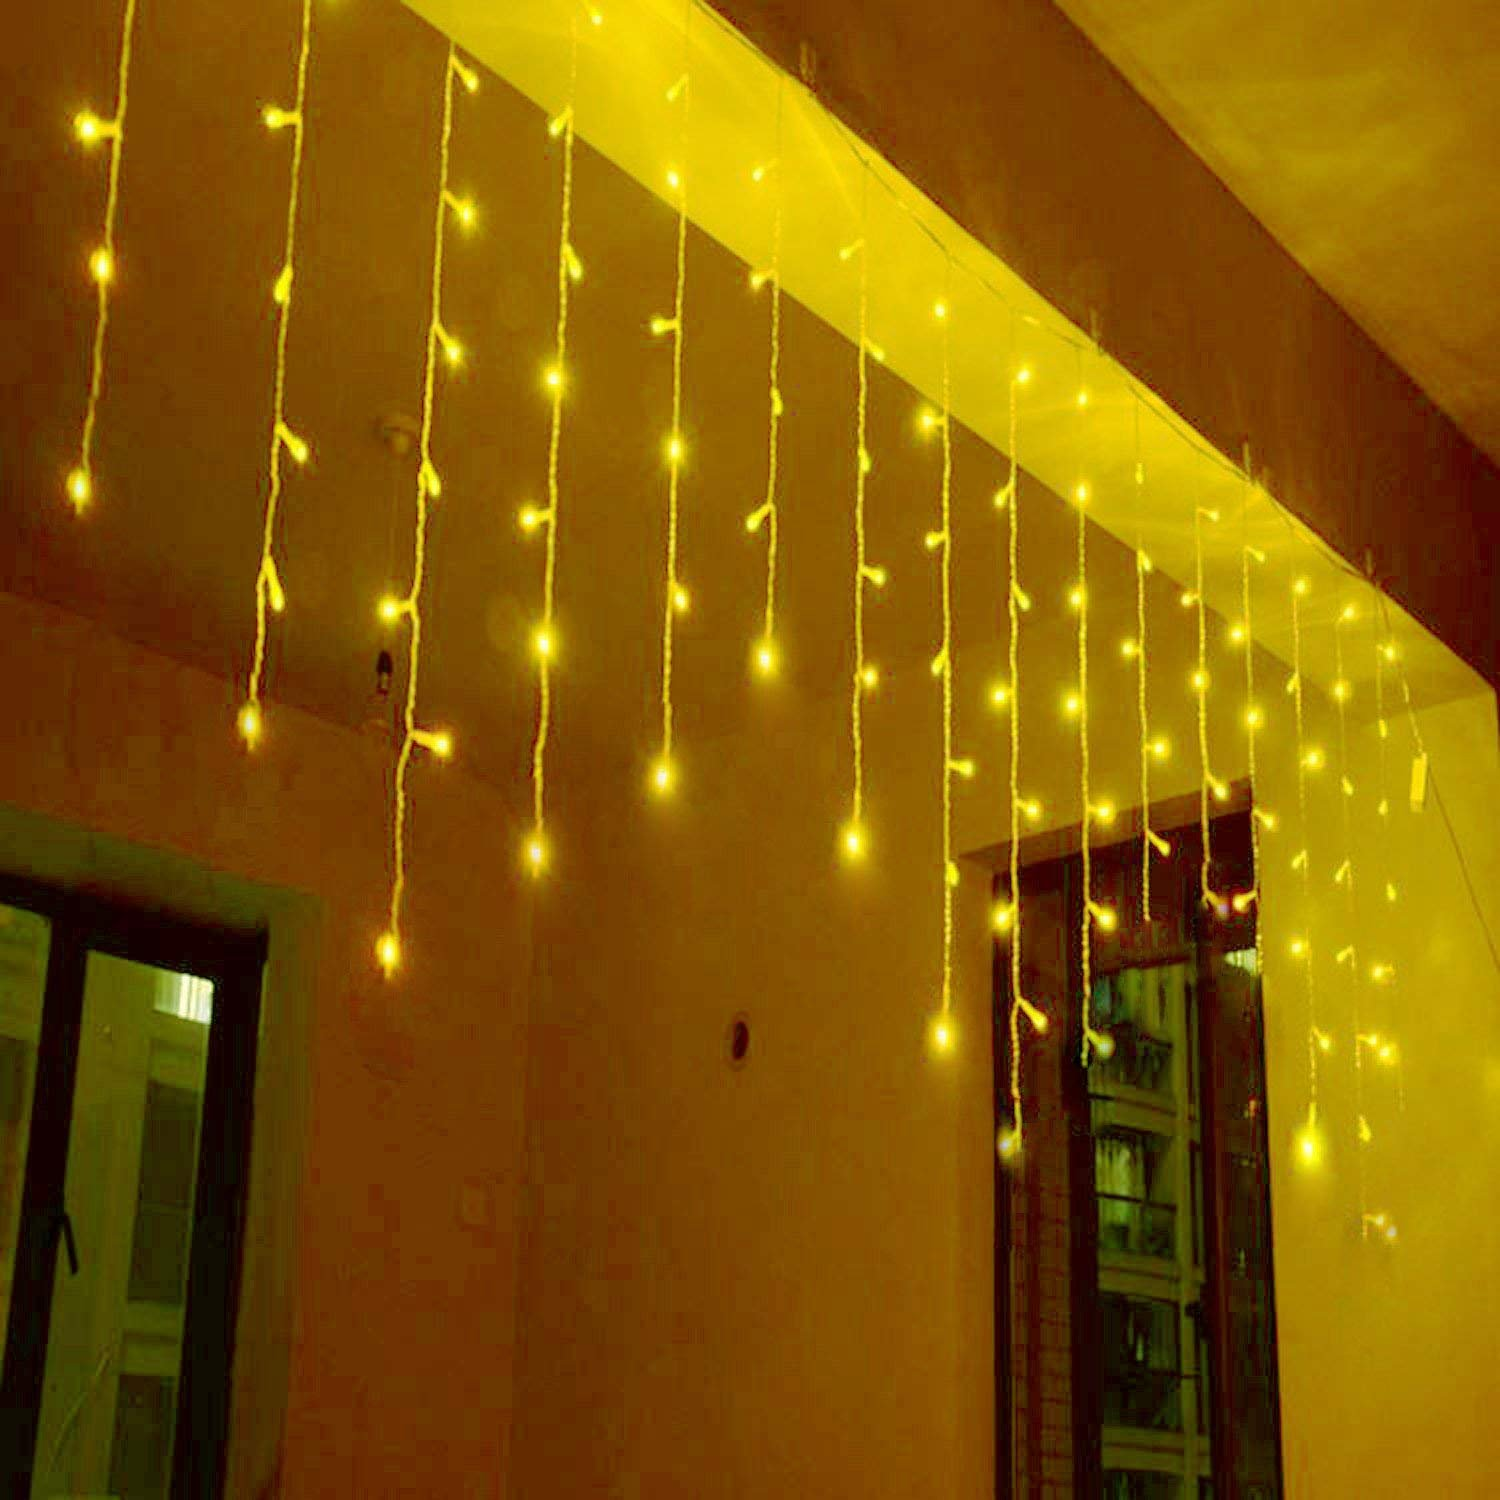 4M/13Ft 96 LED 8 Modes Curtain Window Decorative Room Patio Parties Rope String Wave Light (Warm White) YUJINQ